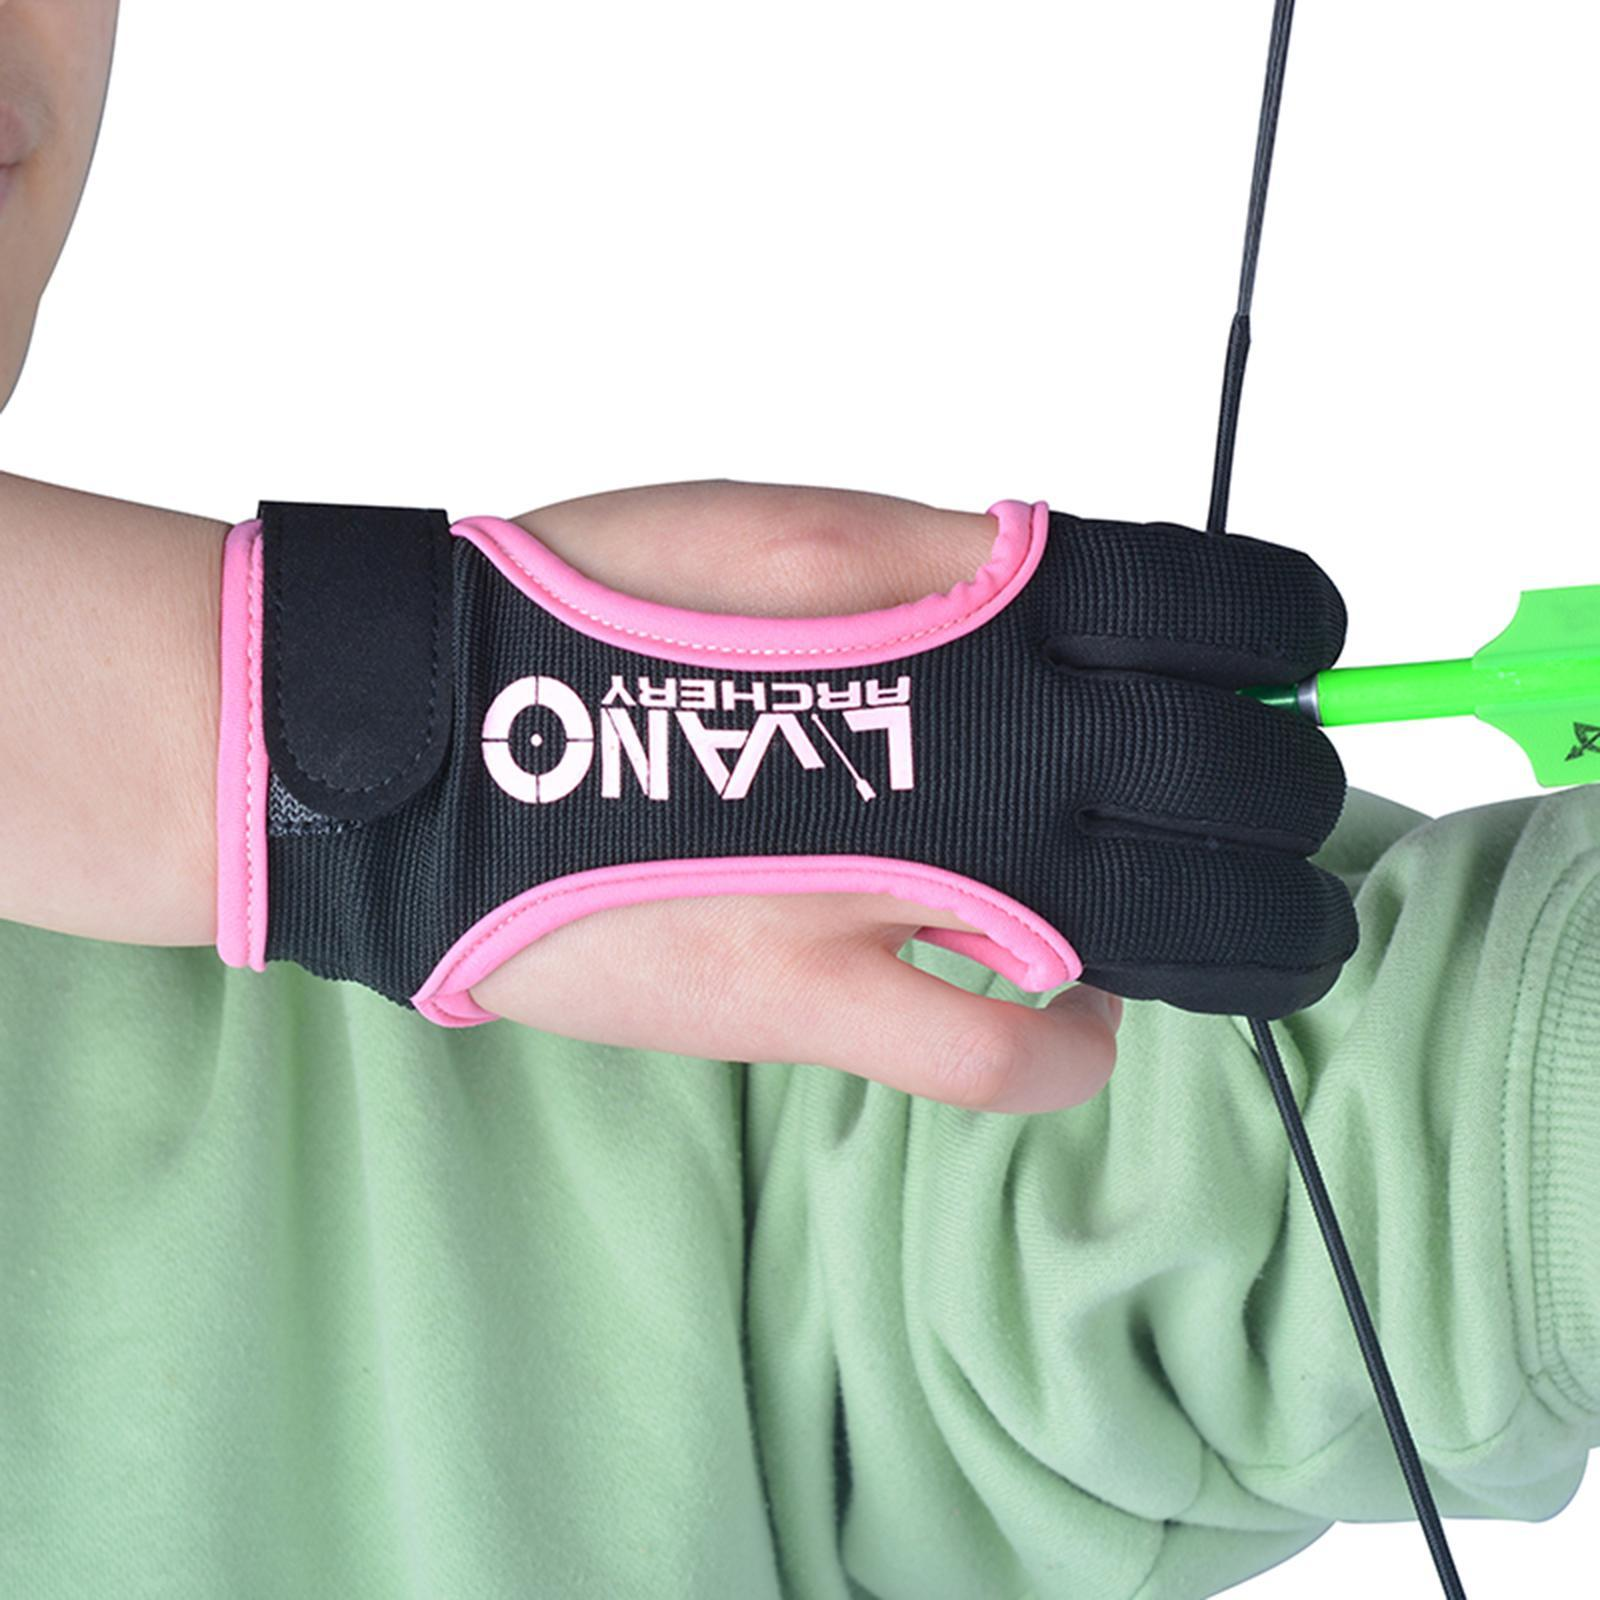 thumbnail 5 - Archery Glove for Recurve Compound Bow 3Finger Leather Guard for Women Men Youth